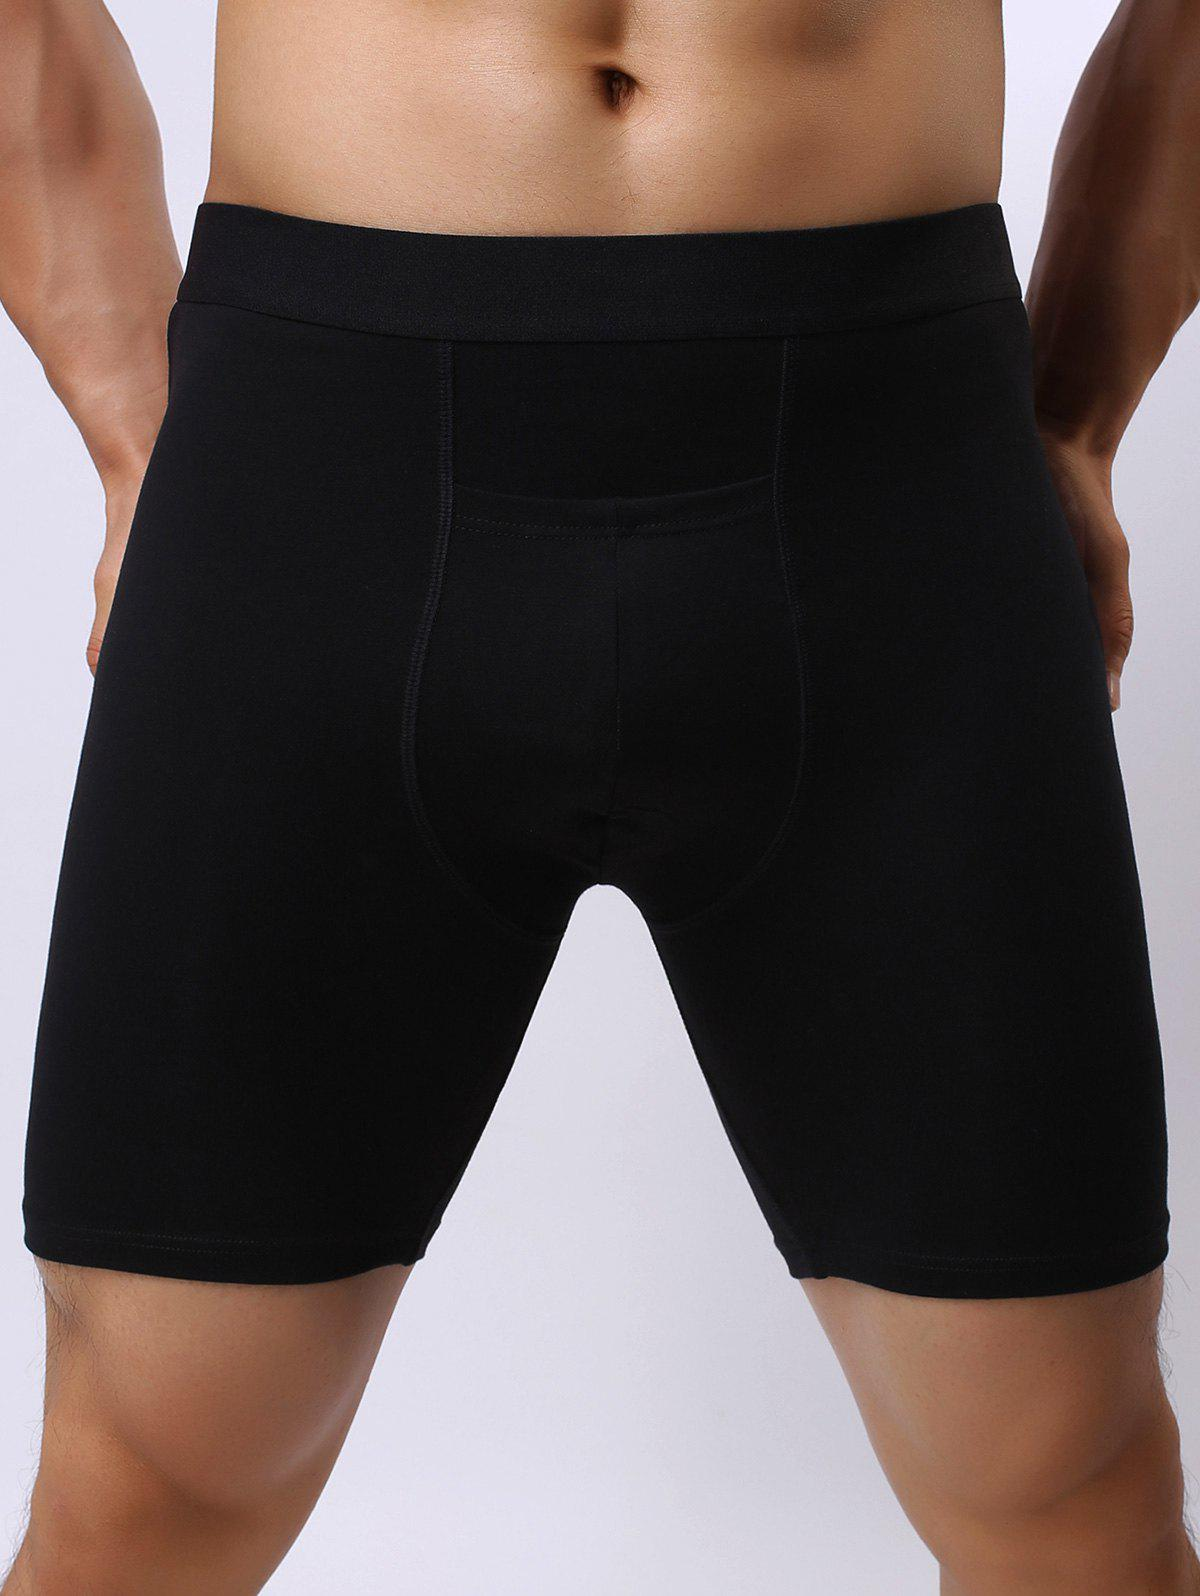 Stretch Front Pocket Design ShortsMEN<br><br>Size: 2XL; Color: BLACK; Type: Boxers; Material: Cotton,Spandex; Waist Type: Mid; Gender: Men; Pattern Type: Others; Weight: 0.1500kg; Package Contents: 1 x Shorts;